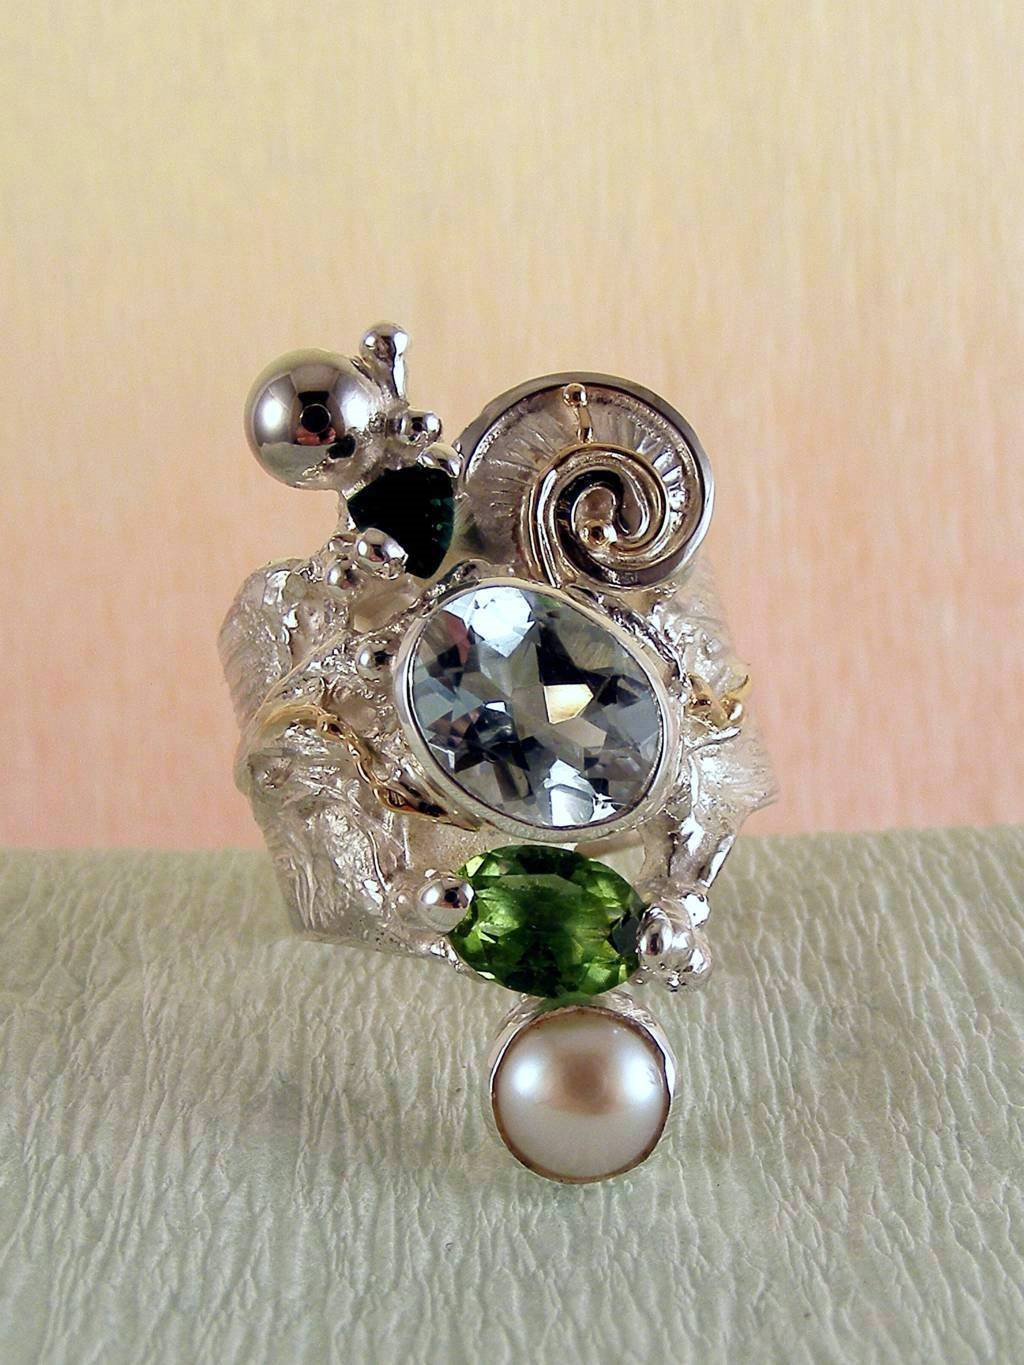 One of a Kind Original Handmade Band Ring 1441 in Sterling Silver and 14 Karat Gold with Green Tourmaline, Blue Topaz, Peridot, Pearl